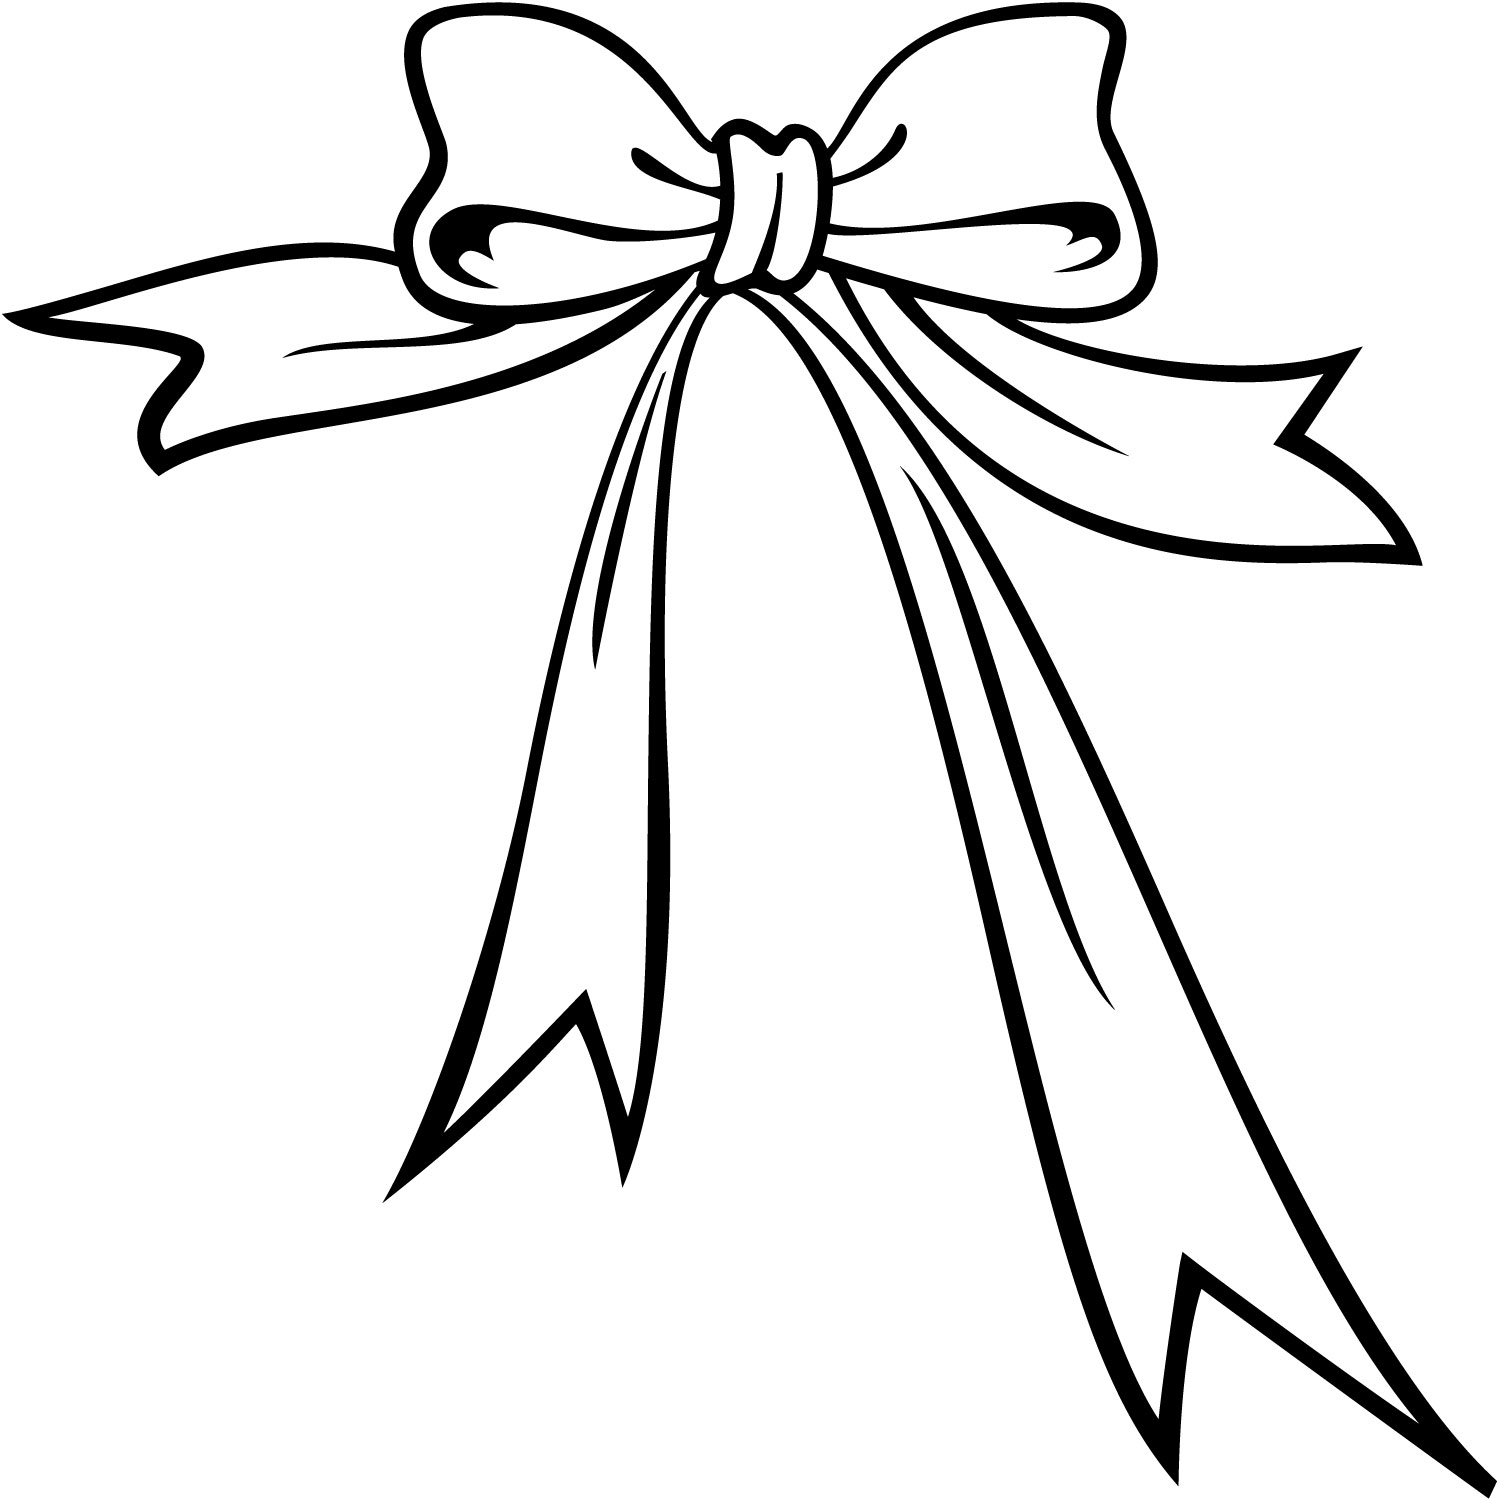 draw a bow pin by bethany garrison on itemssymbolsthings bow draw bow a